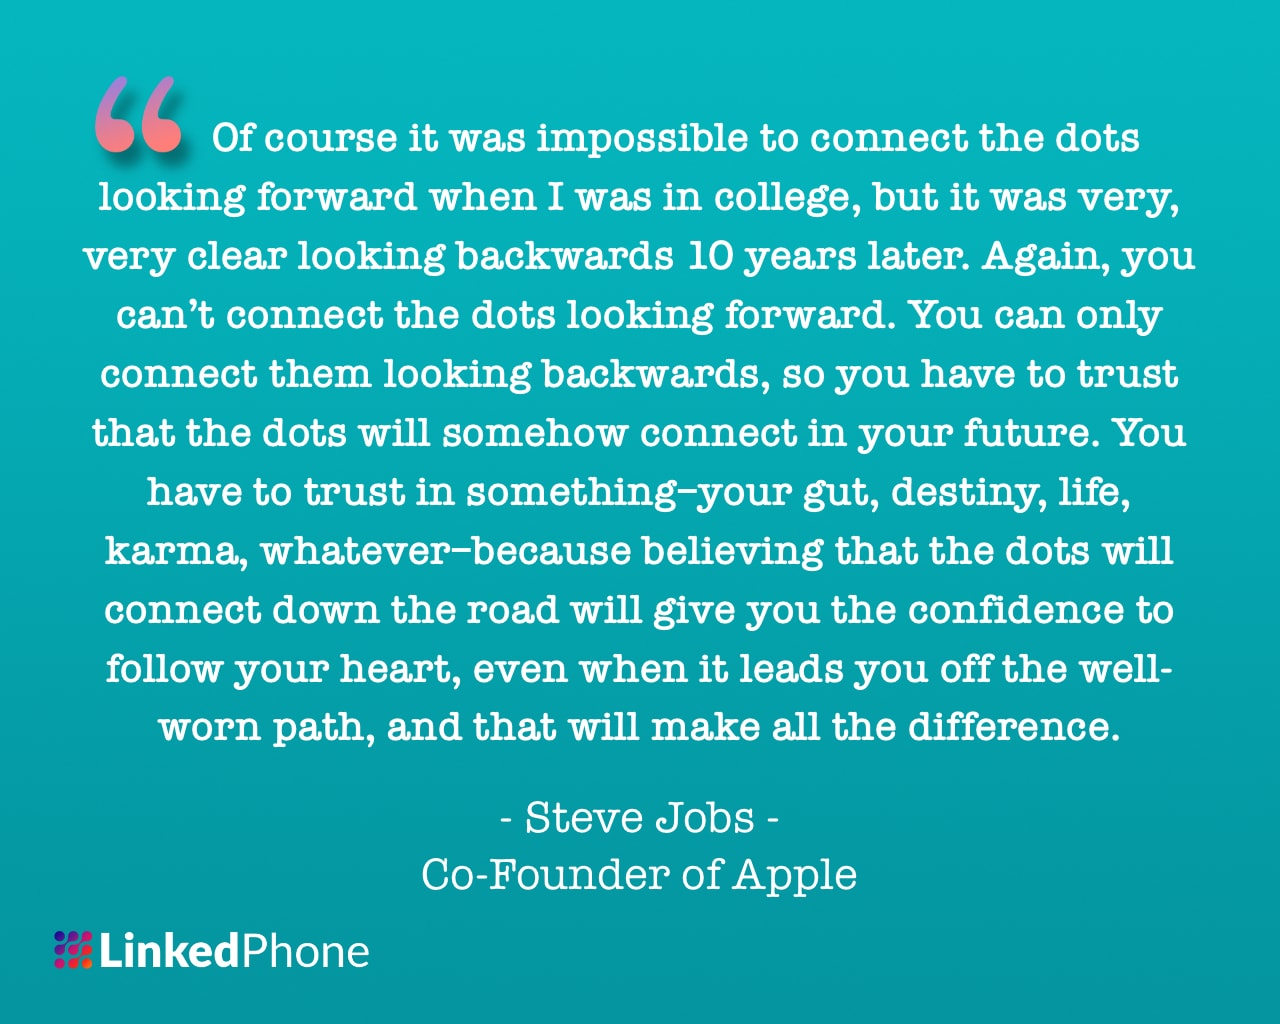 Steve Jobs - Motivational Inspirational Quotes and Sayings